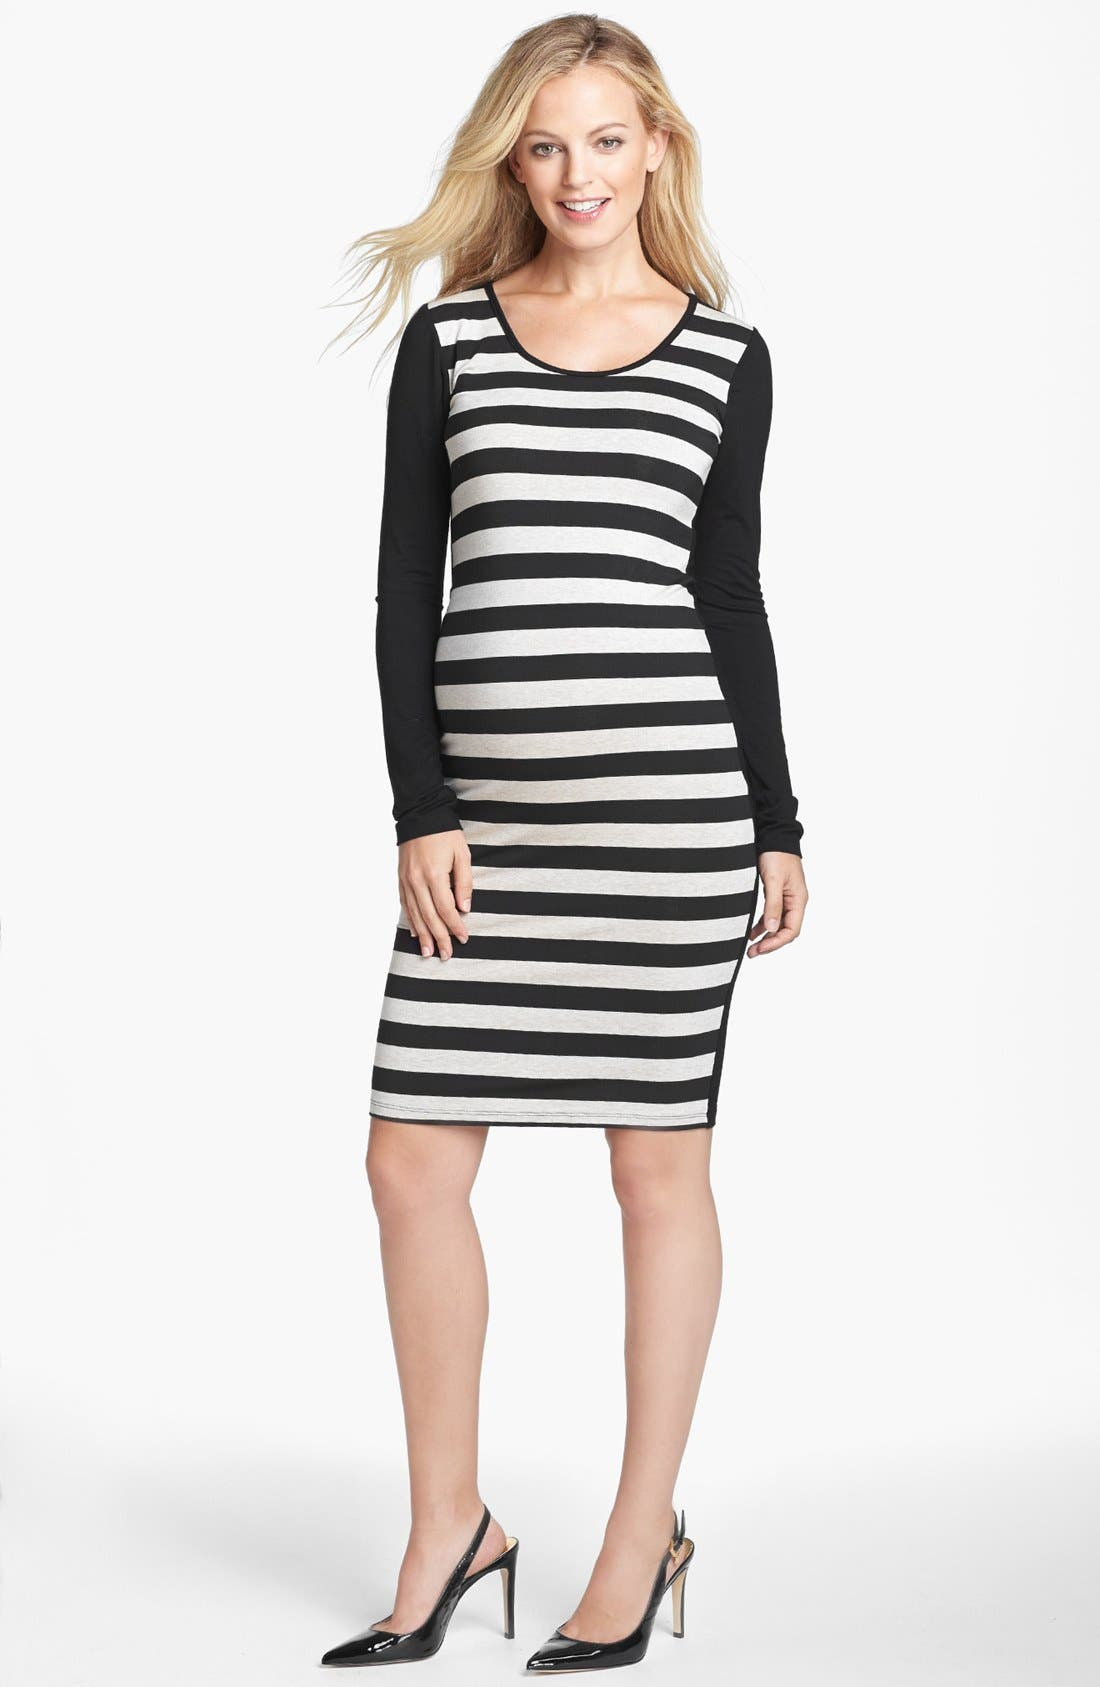 Alternate Image 1 Selected - Nom Maternity 'Krystal' Stripe Maternity Dress